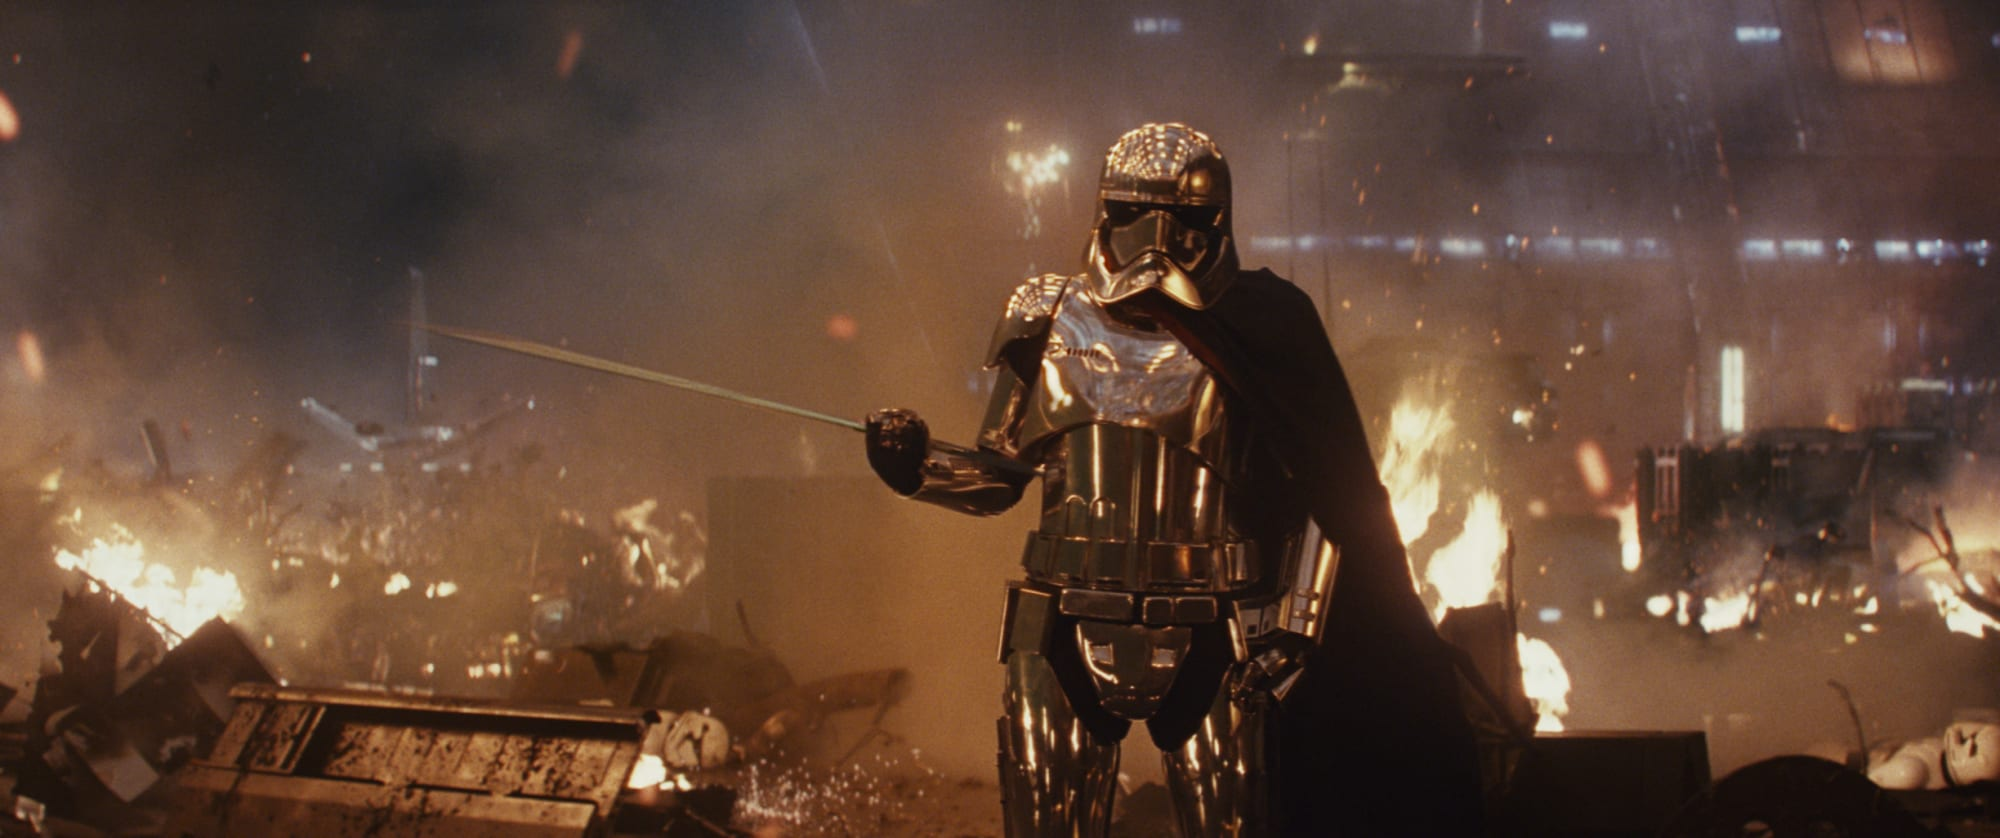 Twitter is pretty sure Star Wars fan shouldn't name his daughter Captain Phasma